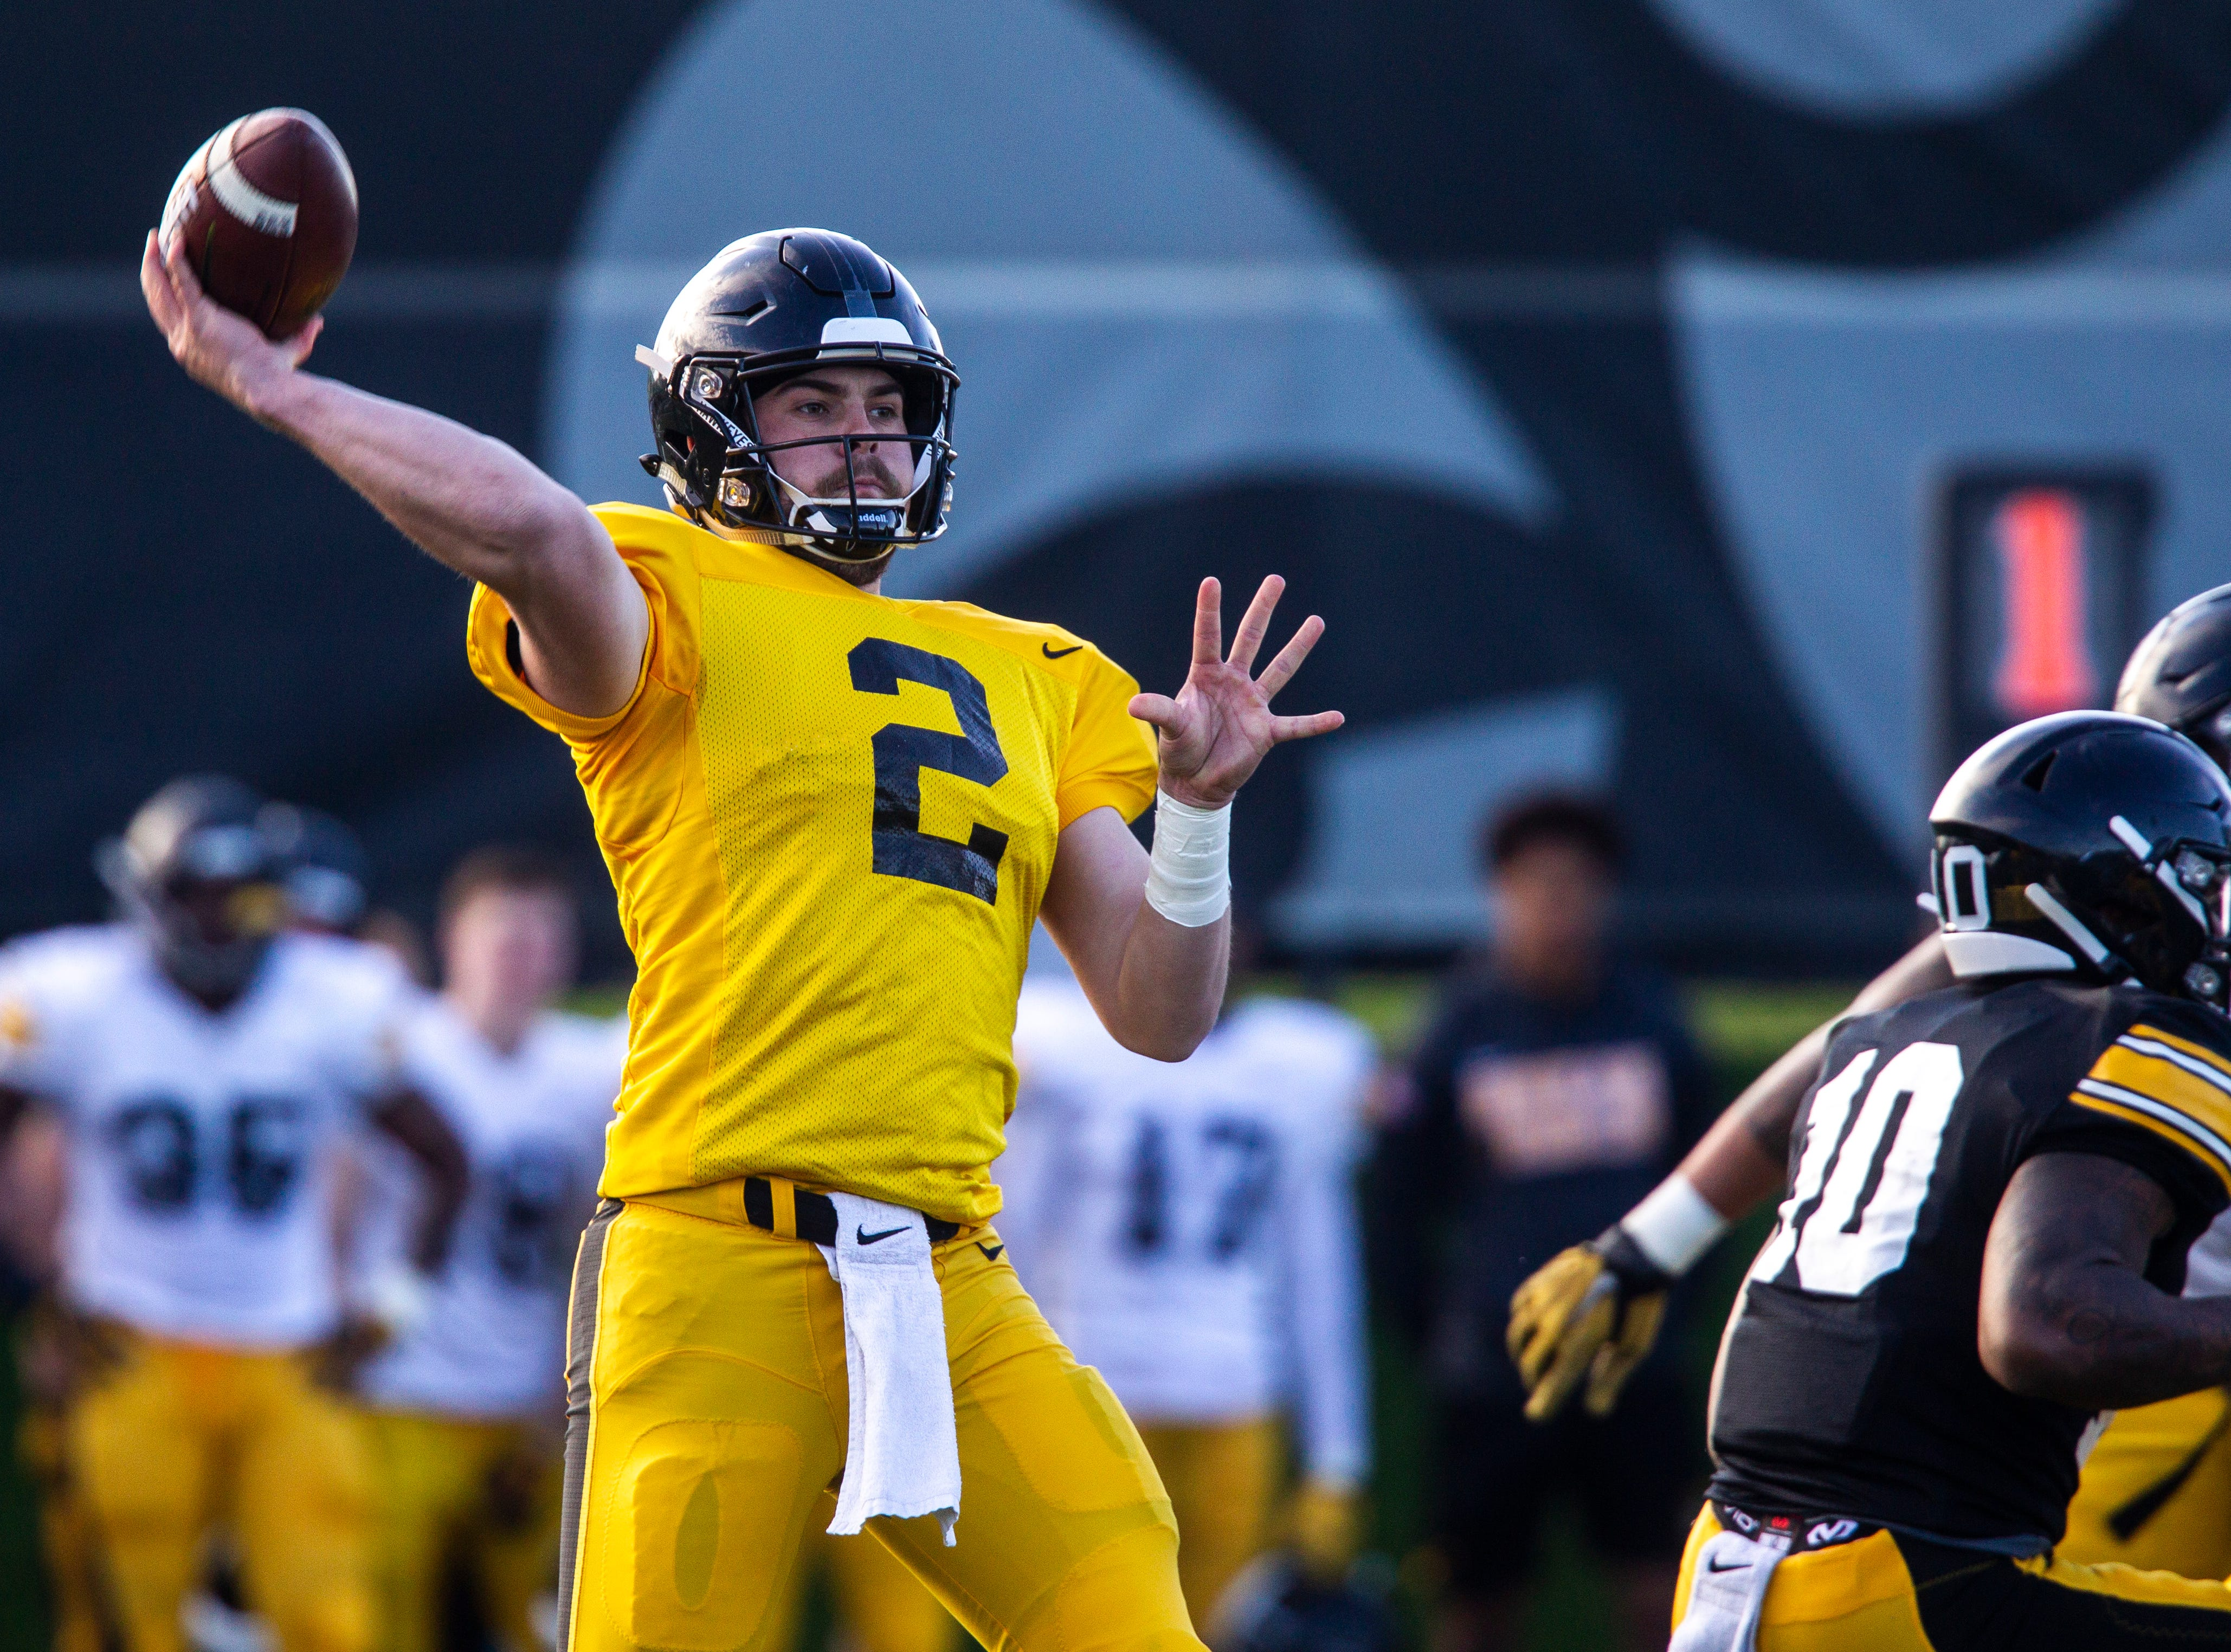 Iowa quarterback Peyton Mansell (2) throws a pass during the final spring football practice, Friday, April 26, 2019, at the University of Iowa outdoor practice facility in Iowa City, Iowa.